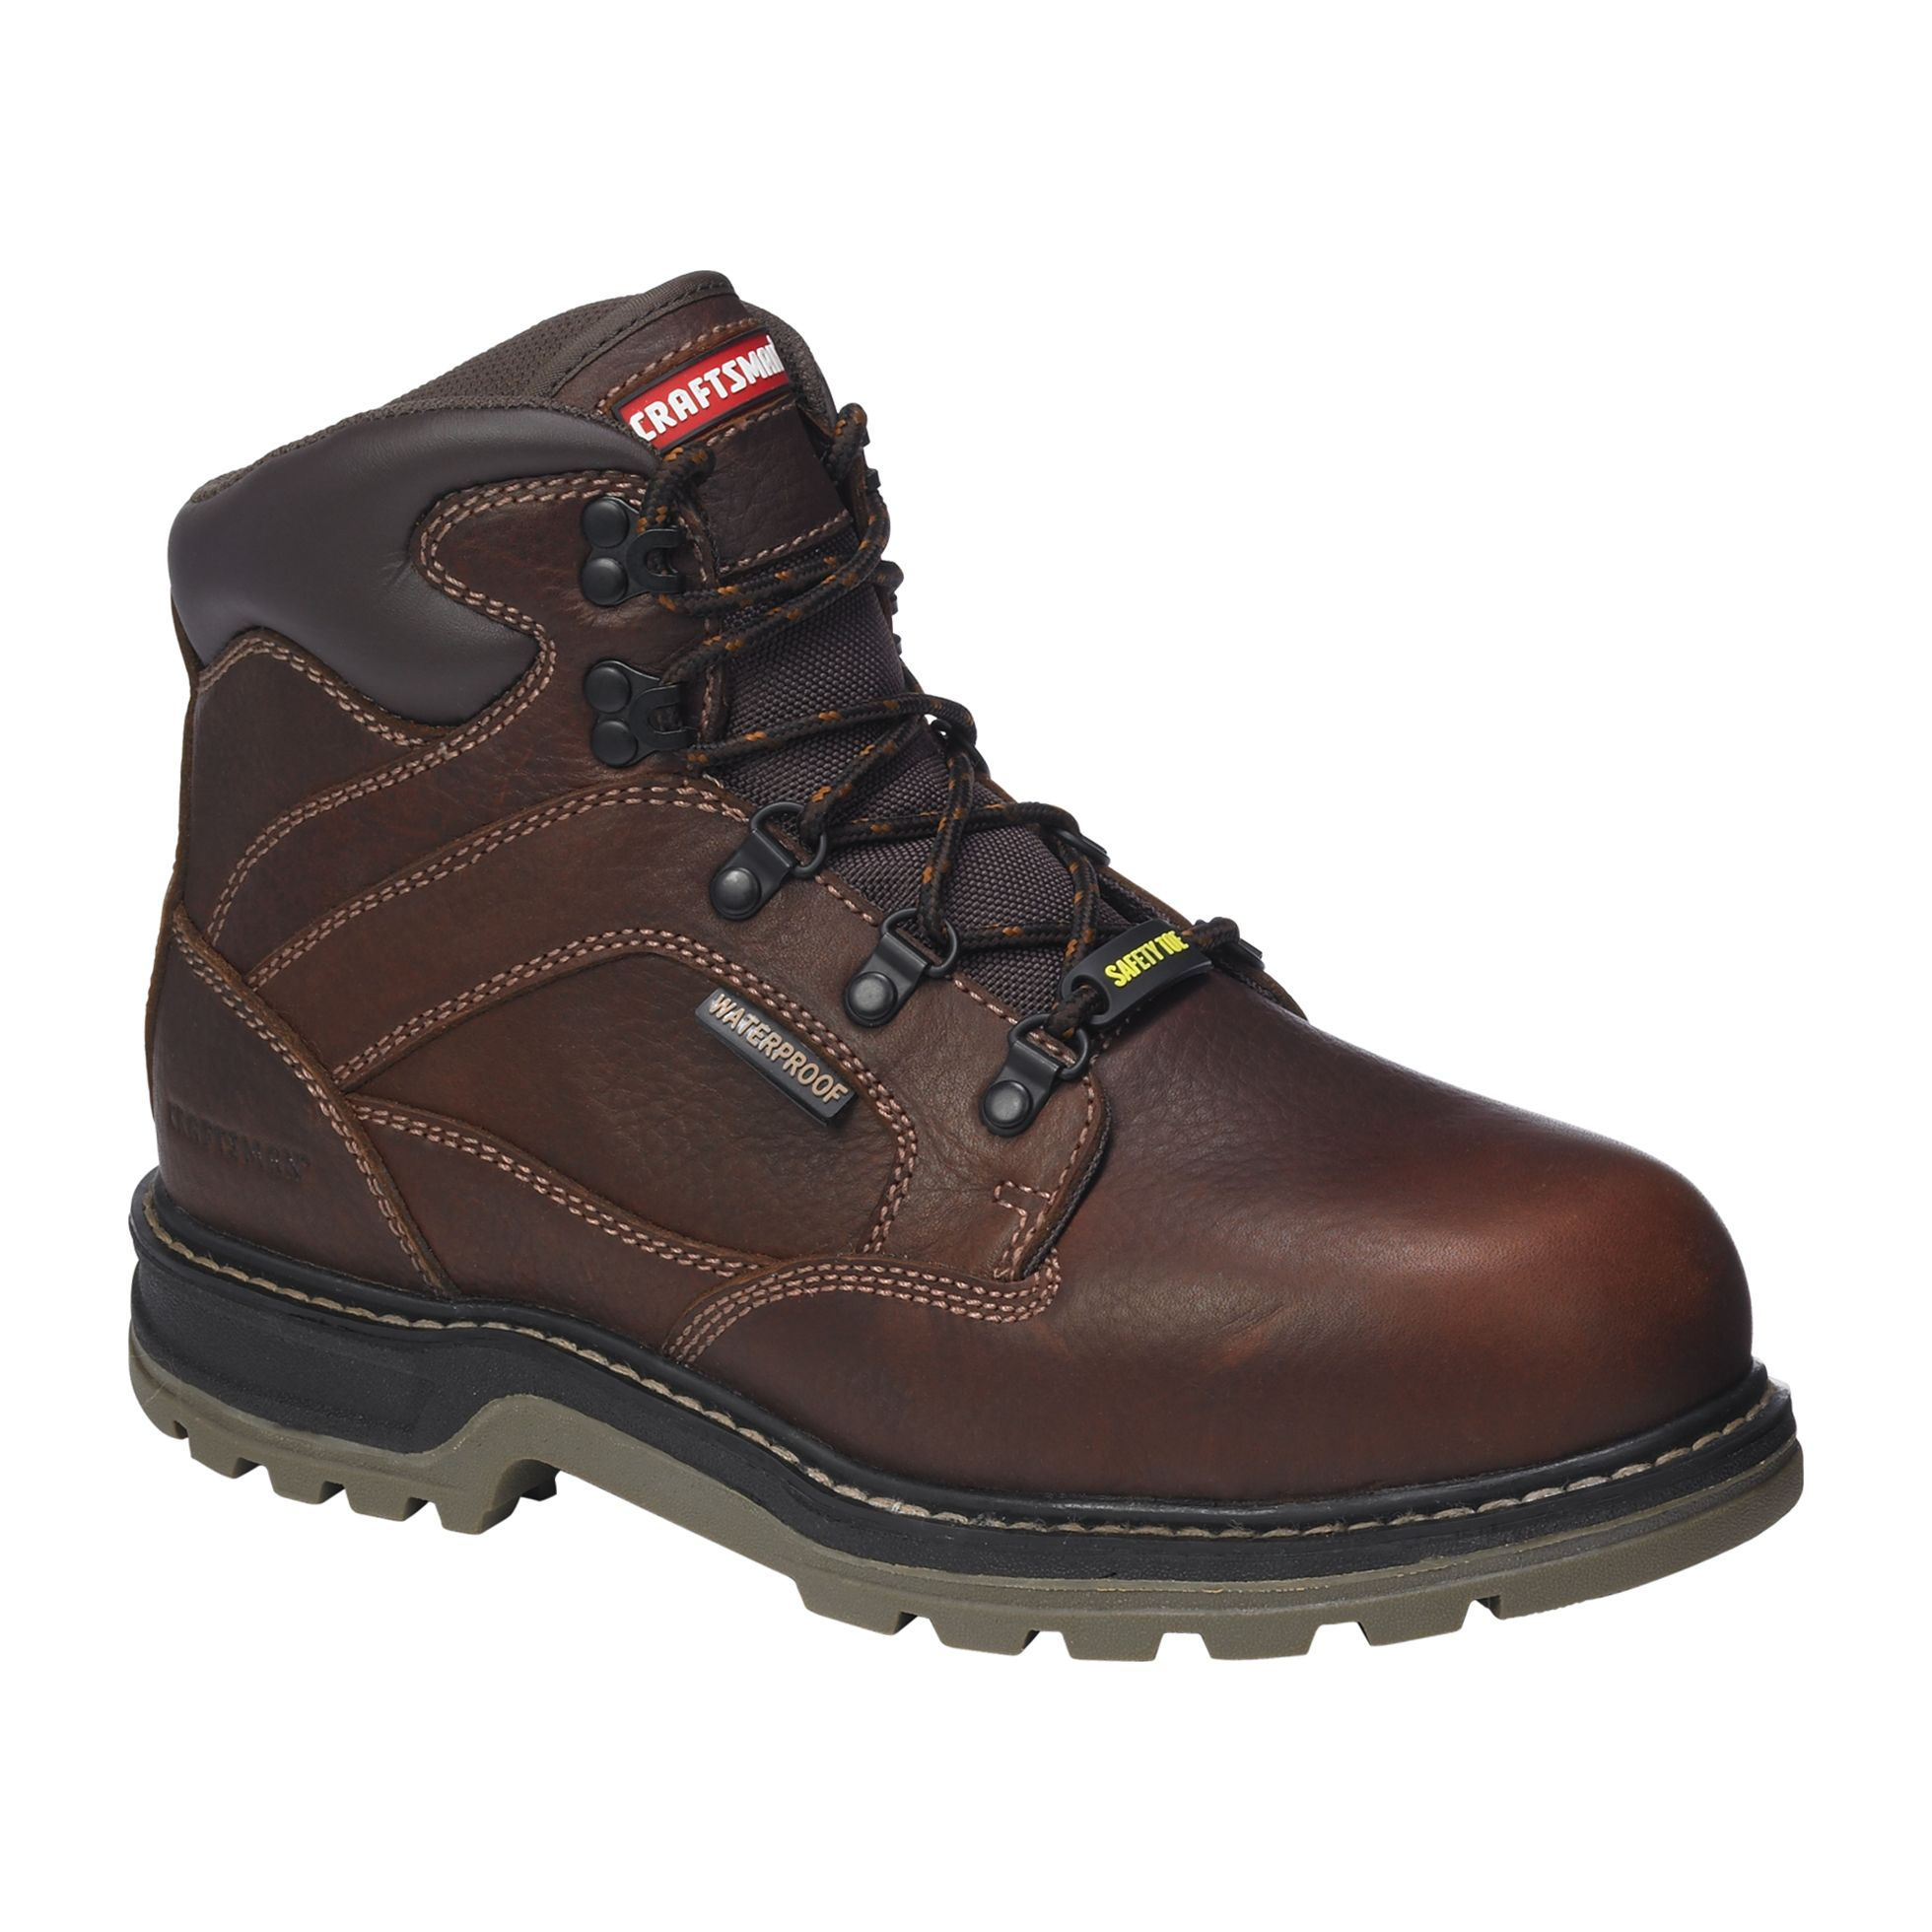 Craftsman  Men's Krypt Steel Toe Work Boot Wide Width - Brown